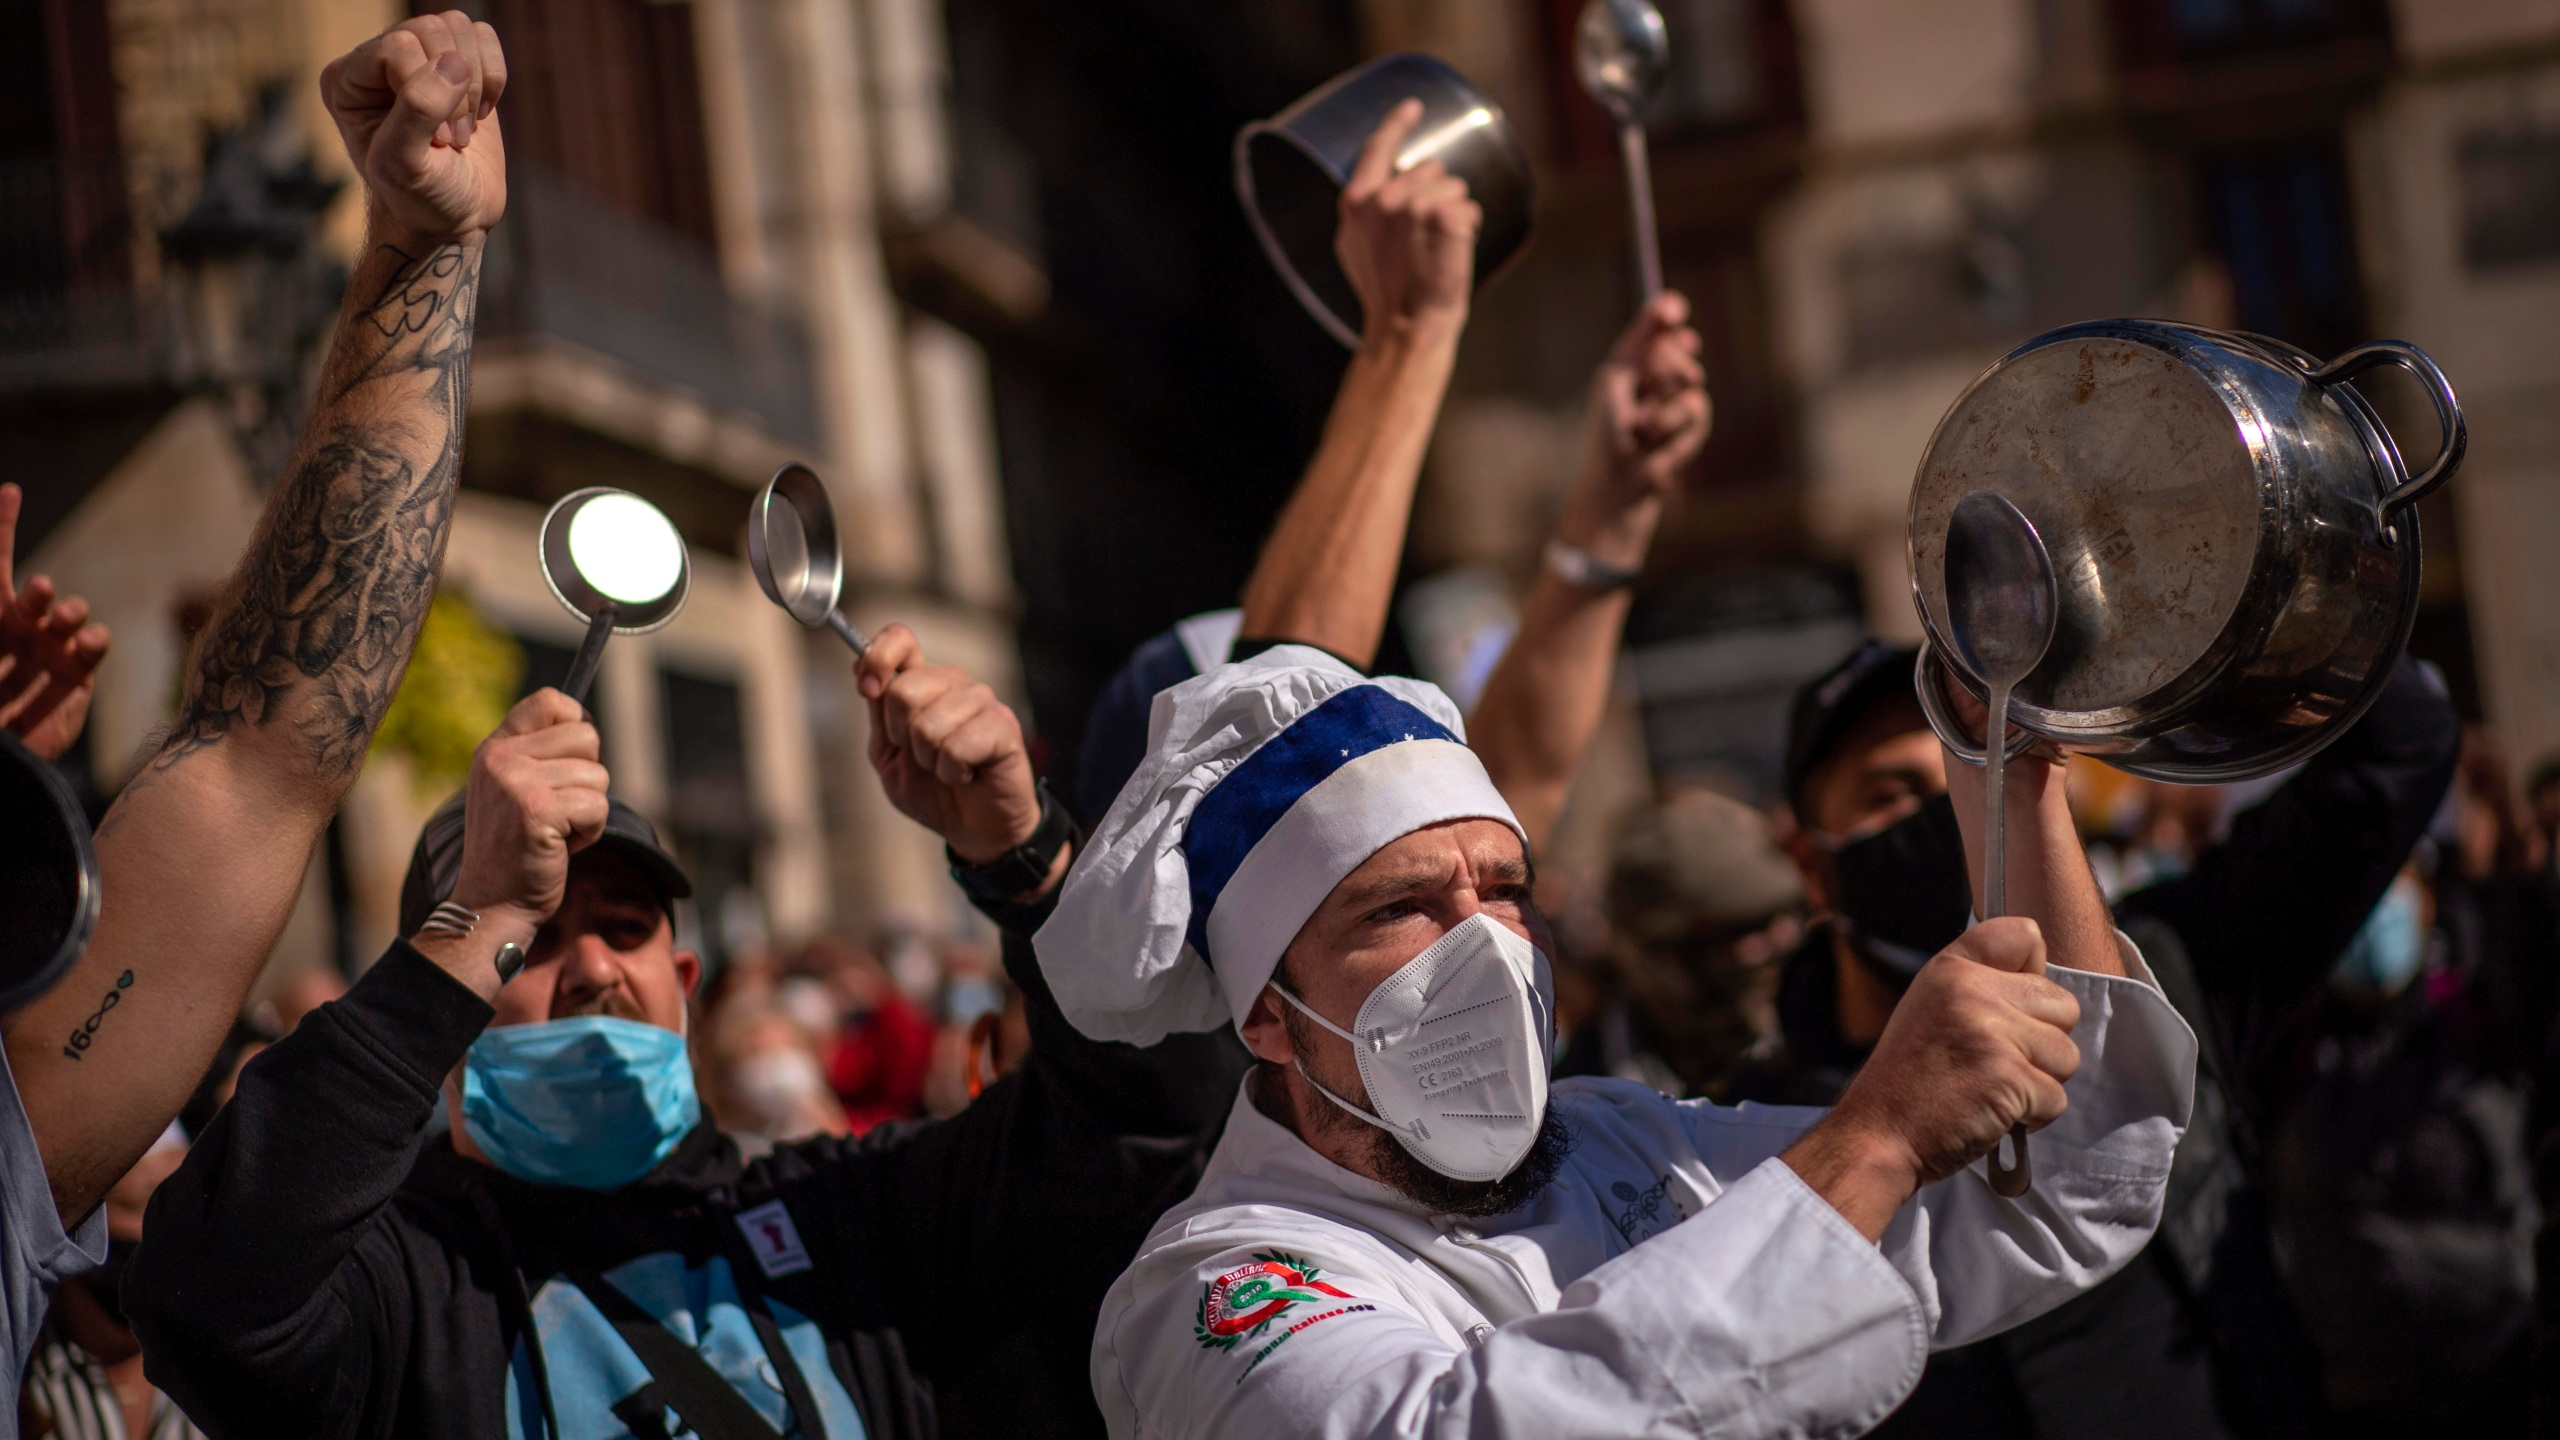 In this Friday, Oct. 16, 2020 file photo, workers of catering sectors take part in a protest organized by restaurants and bar owners in Barcelona, Spain. (AP Photo/Emilio Morenatti, File)